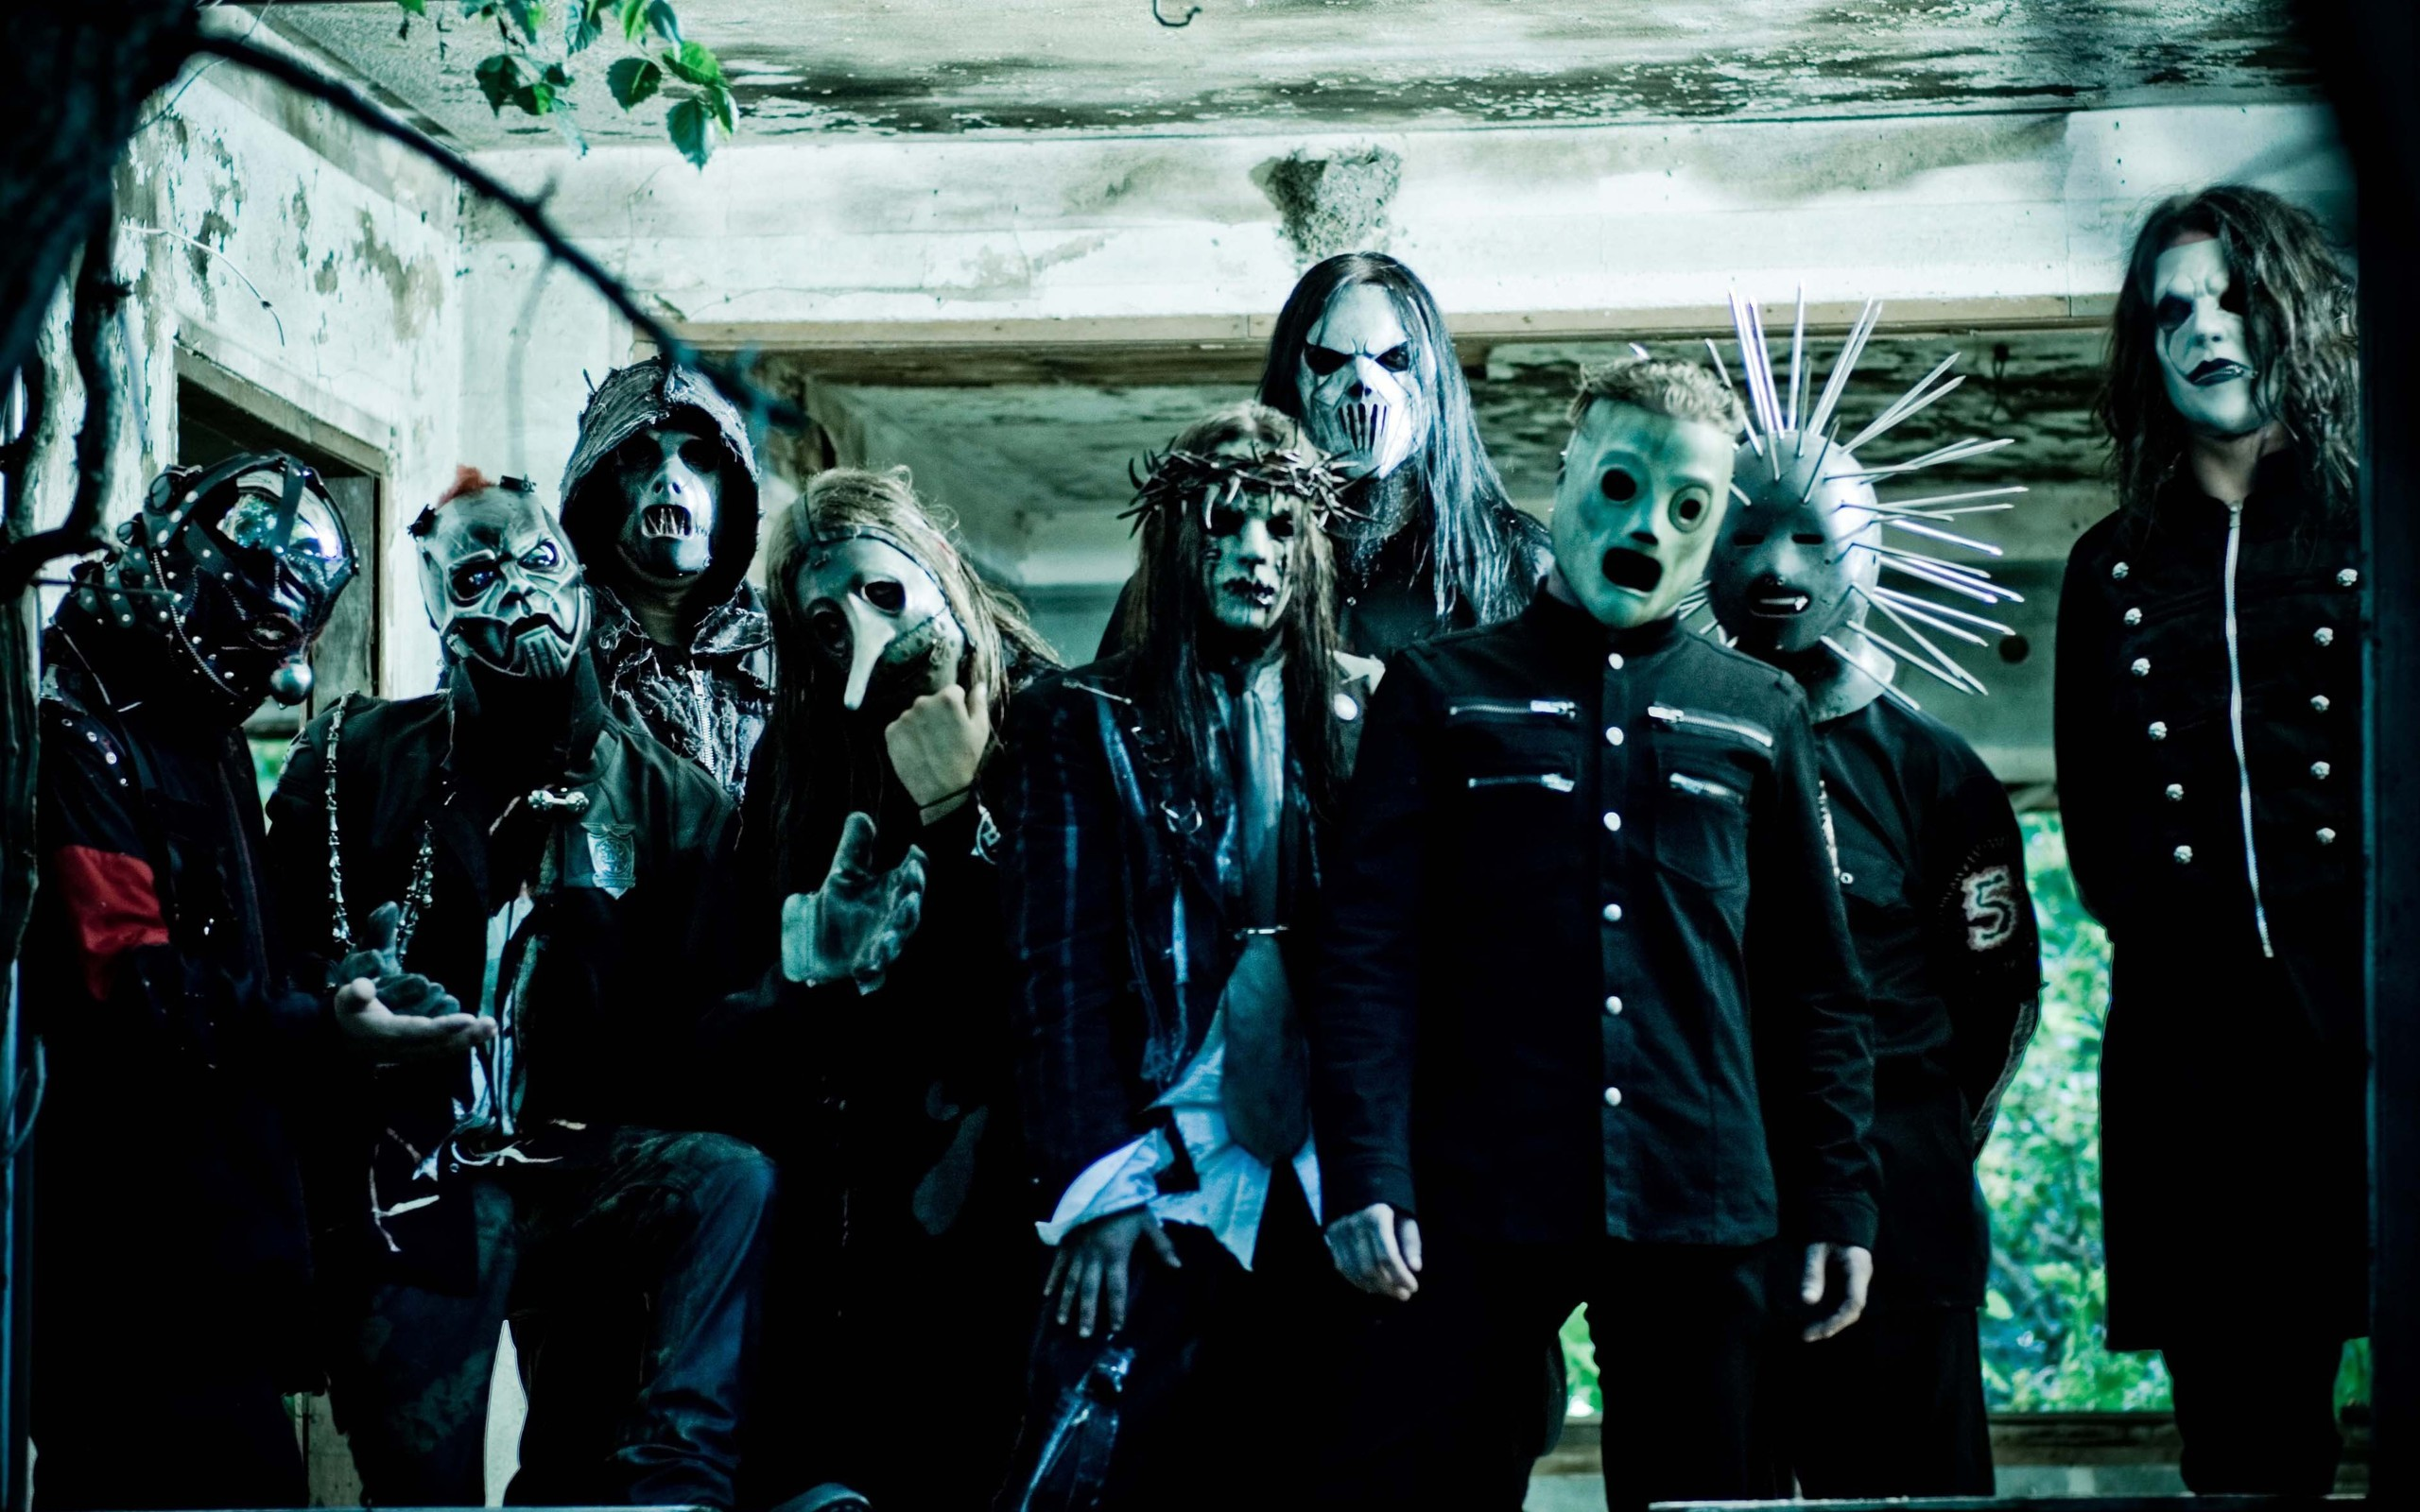 2560x1600 Music - Slipknot Nu Metal Industrial Metal Heavy Metal Wallpaper